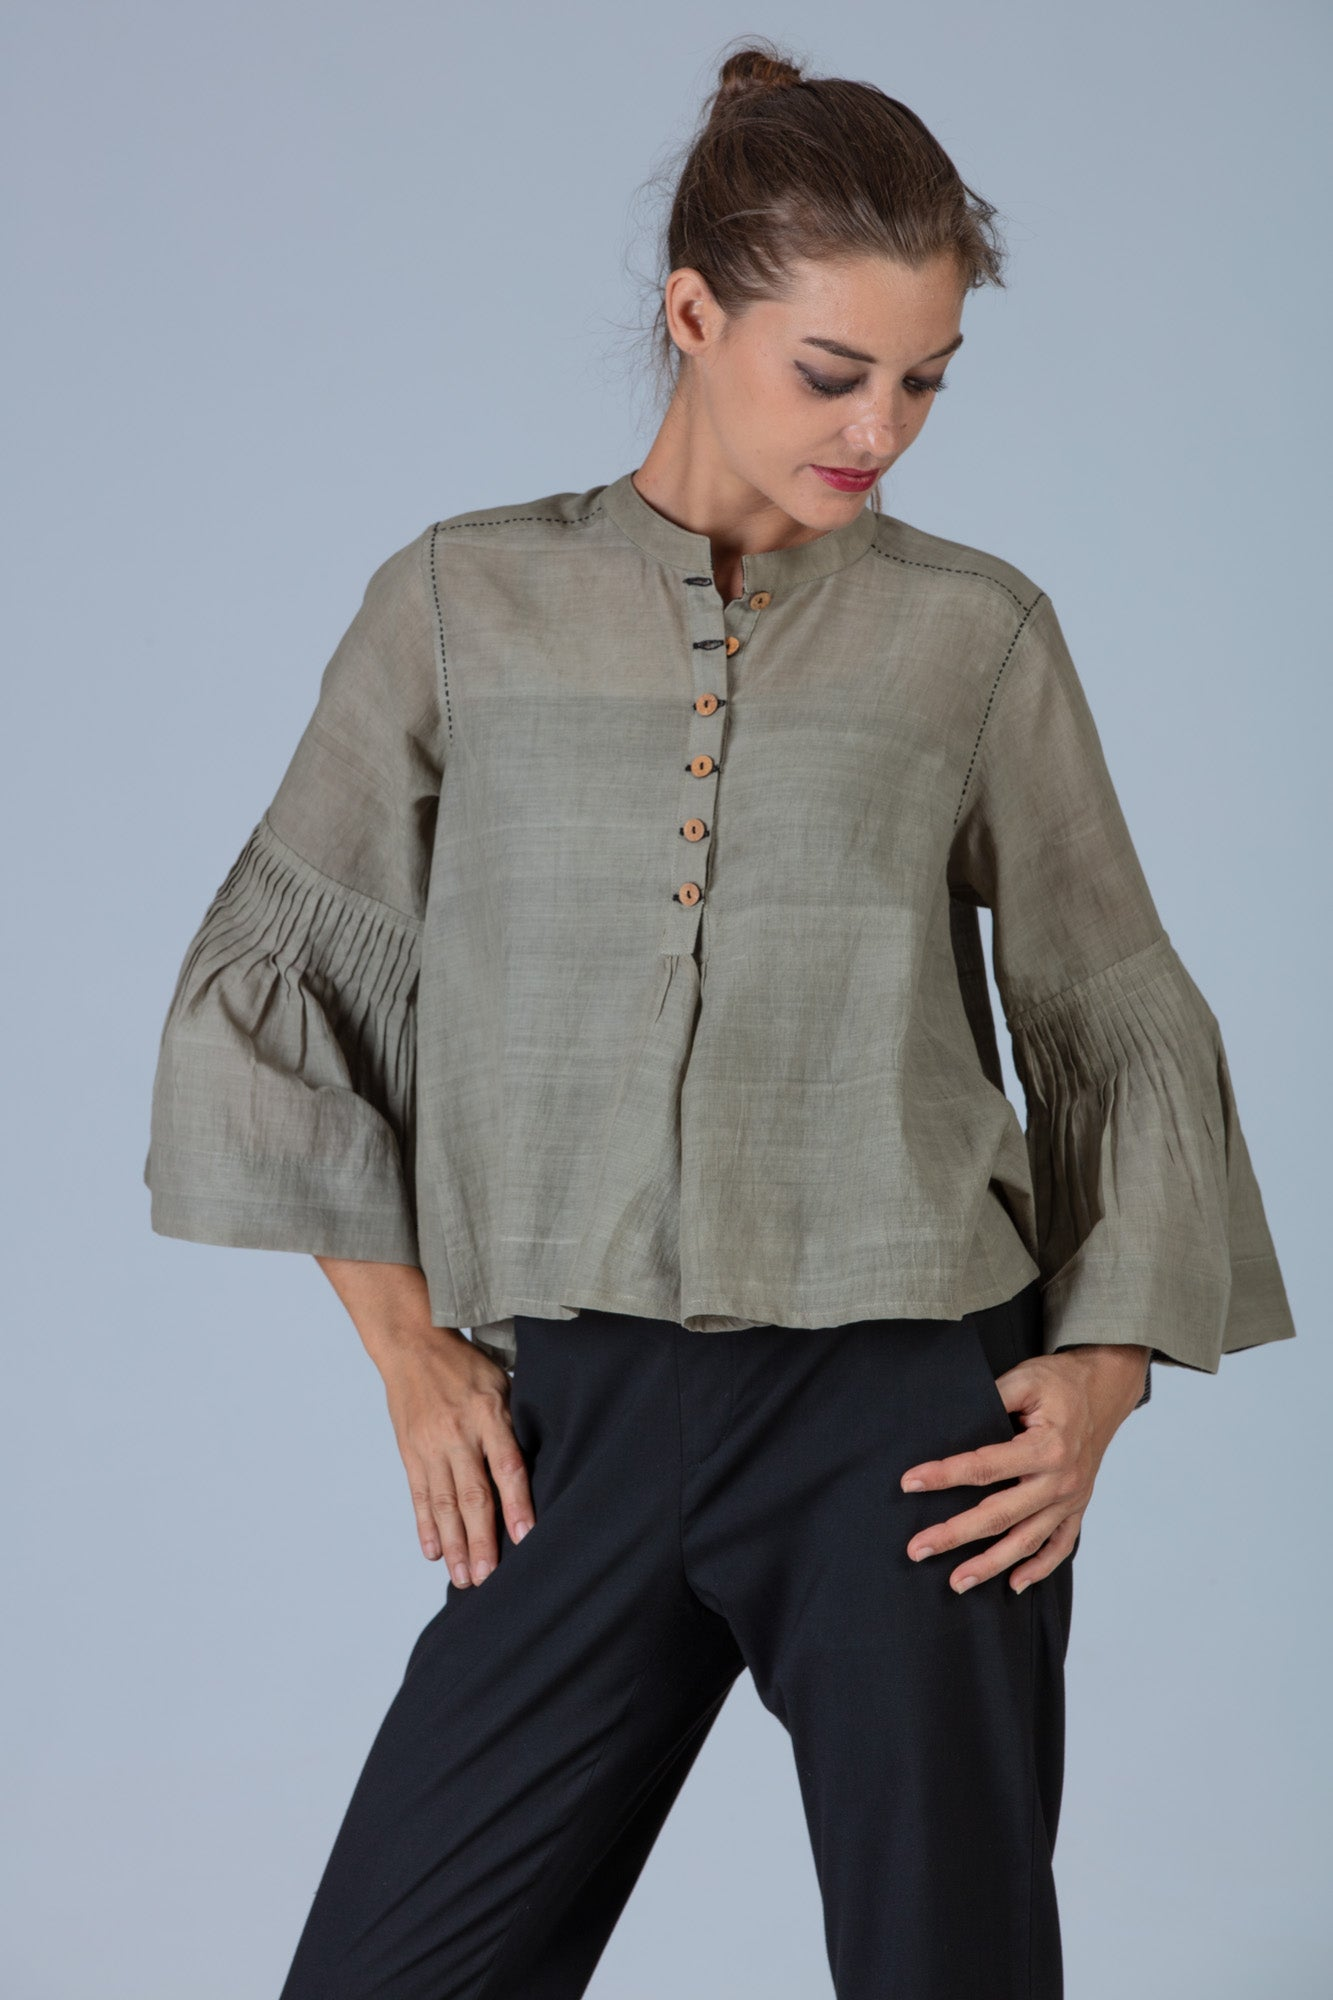 Tulsi dyed Organic cotton Top - SAIYUKTA